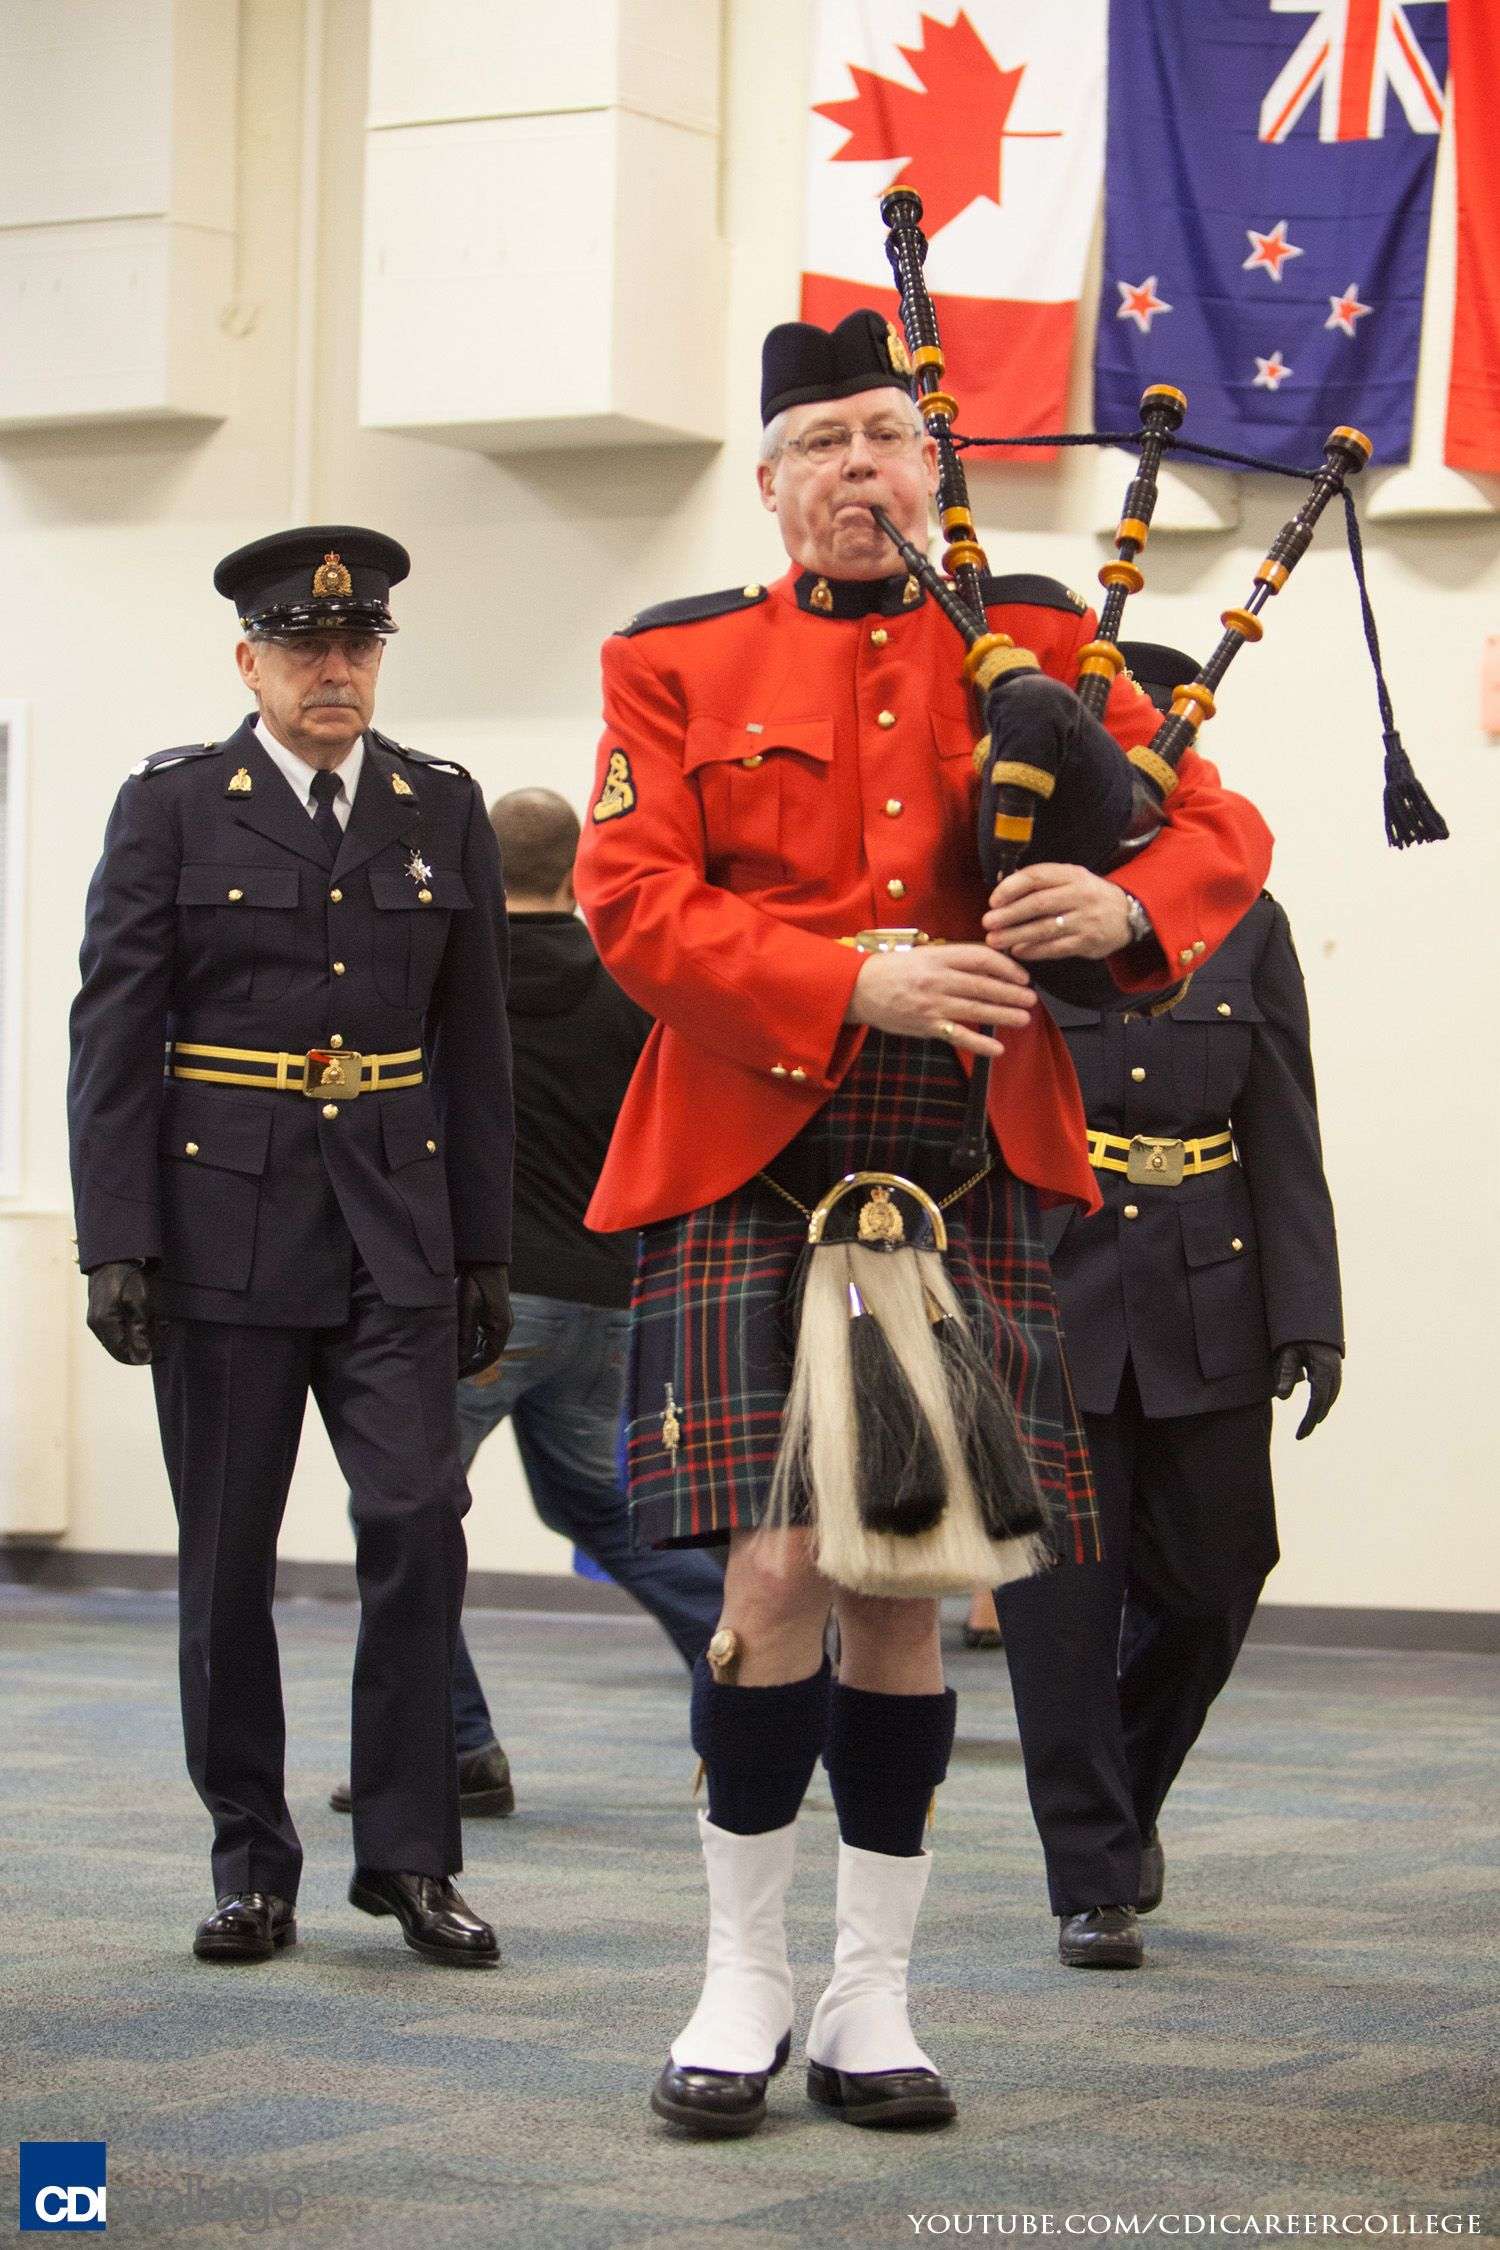 Graduation Ceremony at the CDI College Surrey Campus - Bagpipe Player Subscribe to CDI College: http://www.youtube.com/subscription_center?add_user=CDICareerCollege #Graduation #Ceremony #at #the #CDICollege #Surrey #Campus #Bagpipe #Player